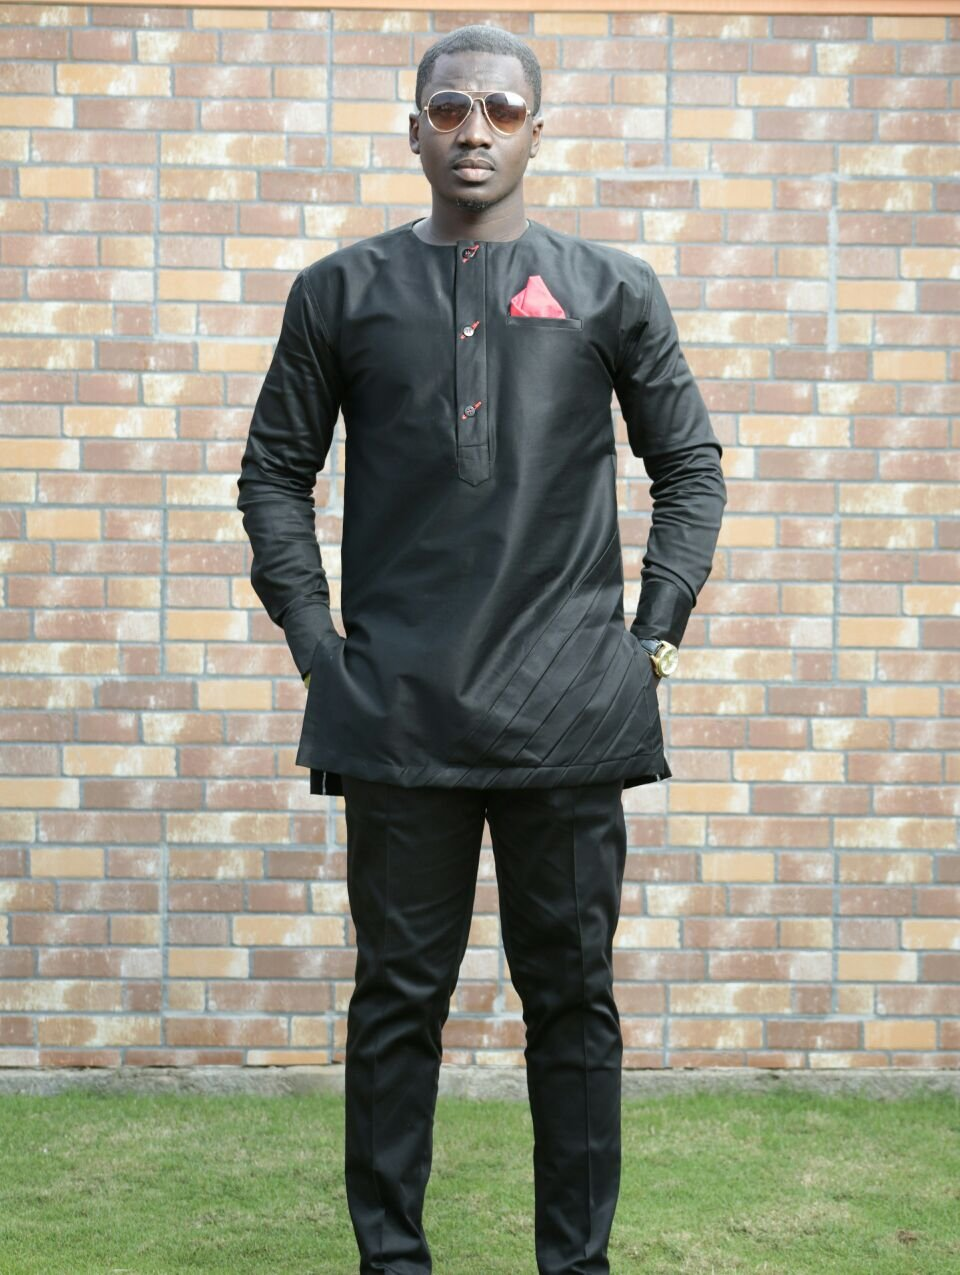 Black-Out Men's African Clothing African Wear Pants & Shirt